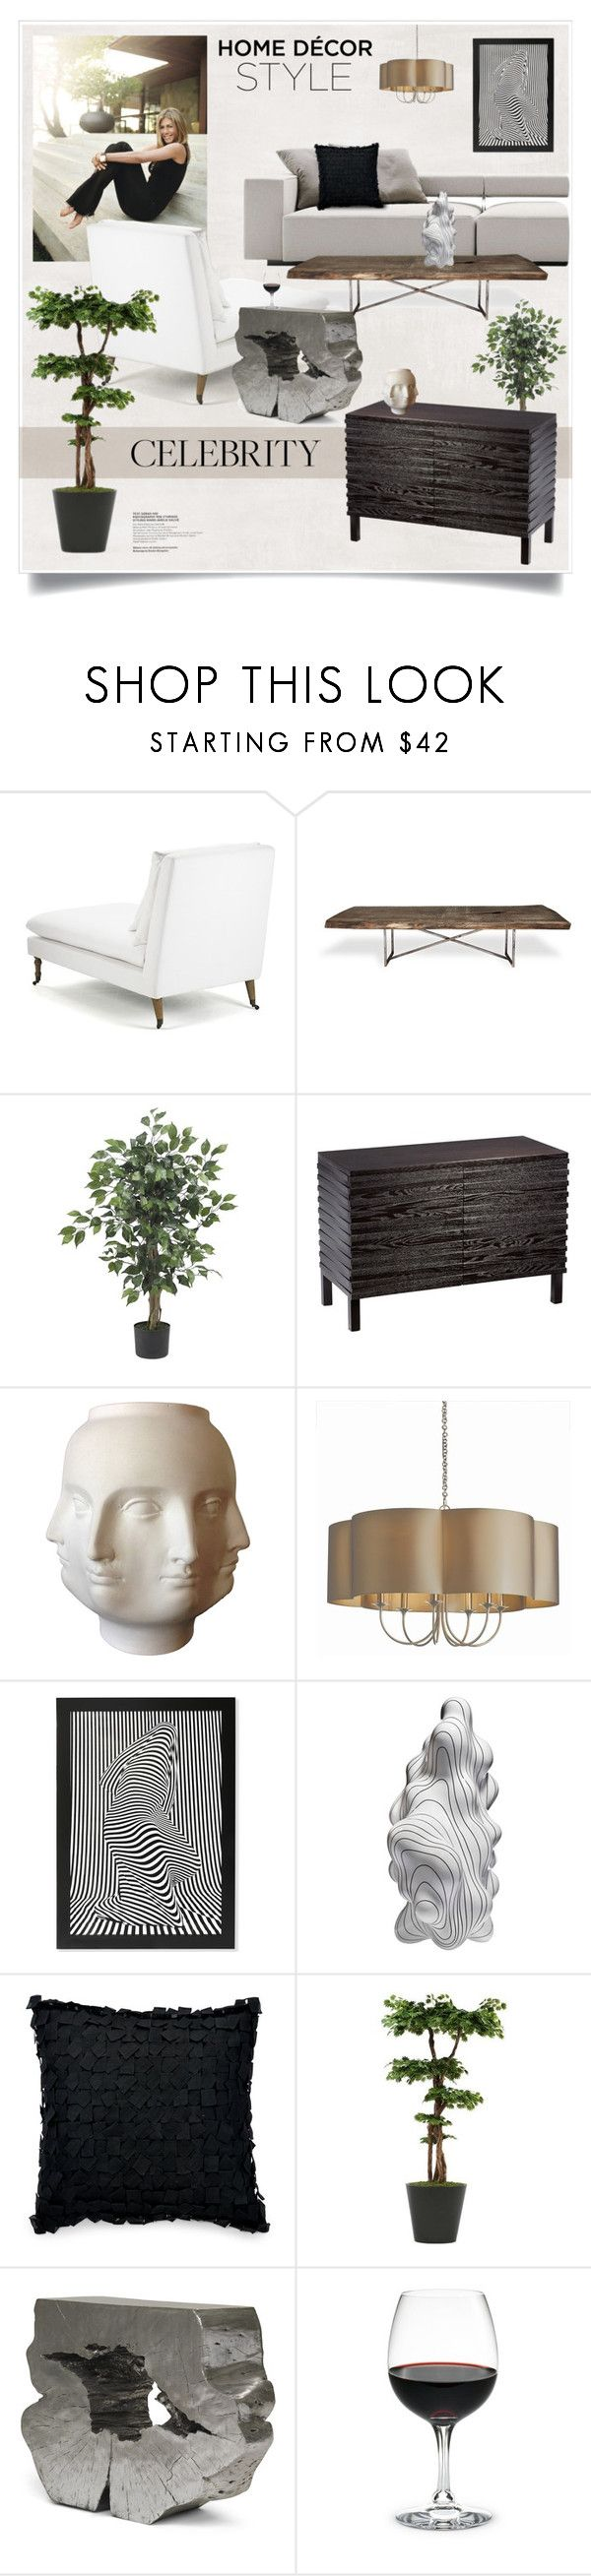 328 best home decor & accessories images on pinterest